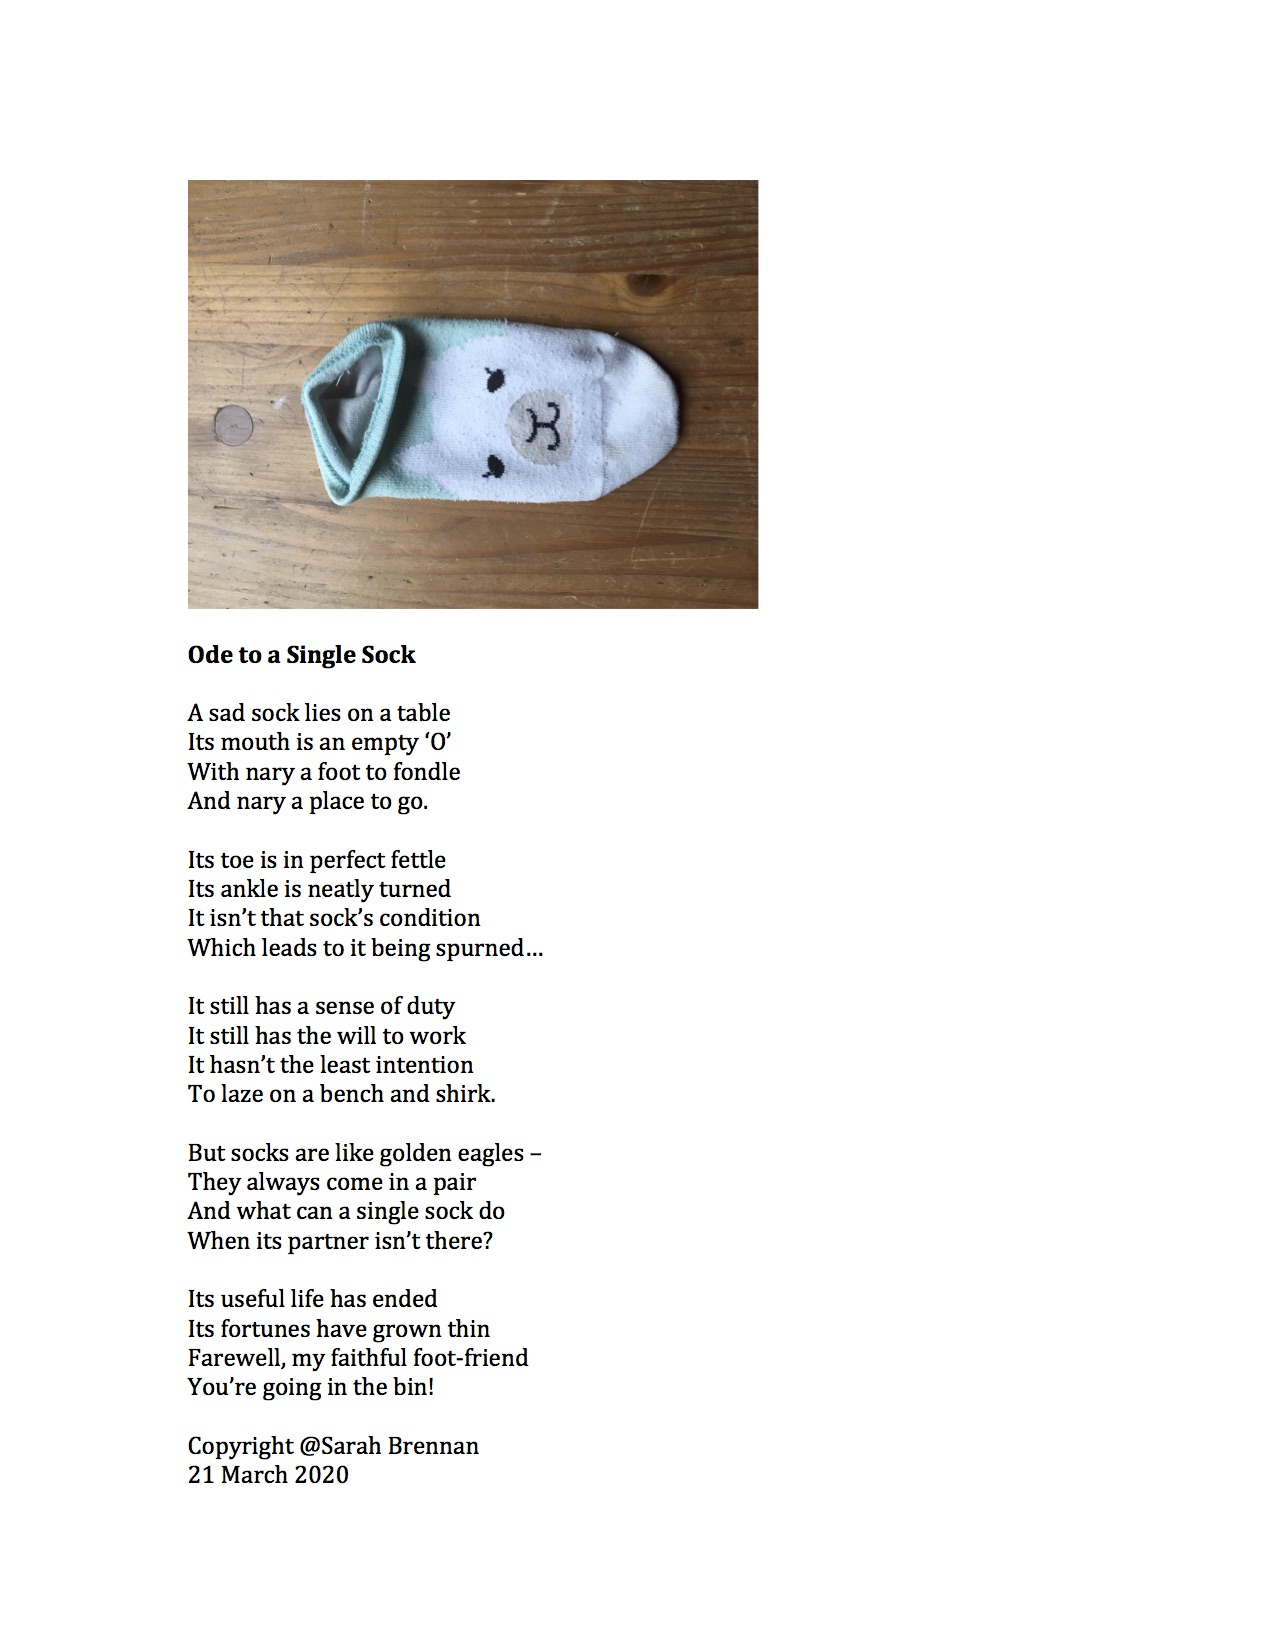 Ode to a Single Sock